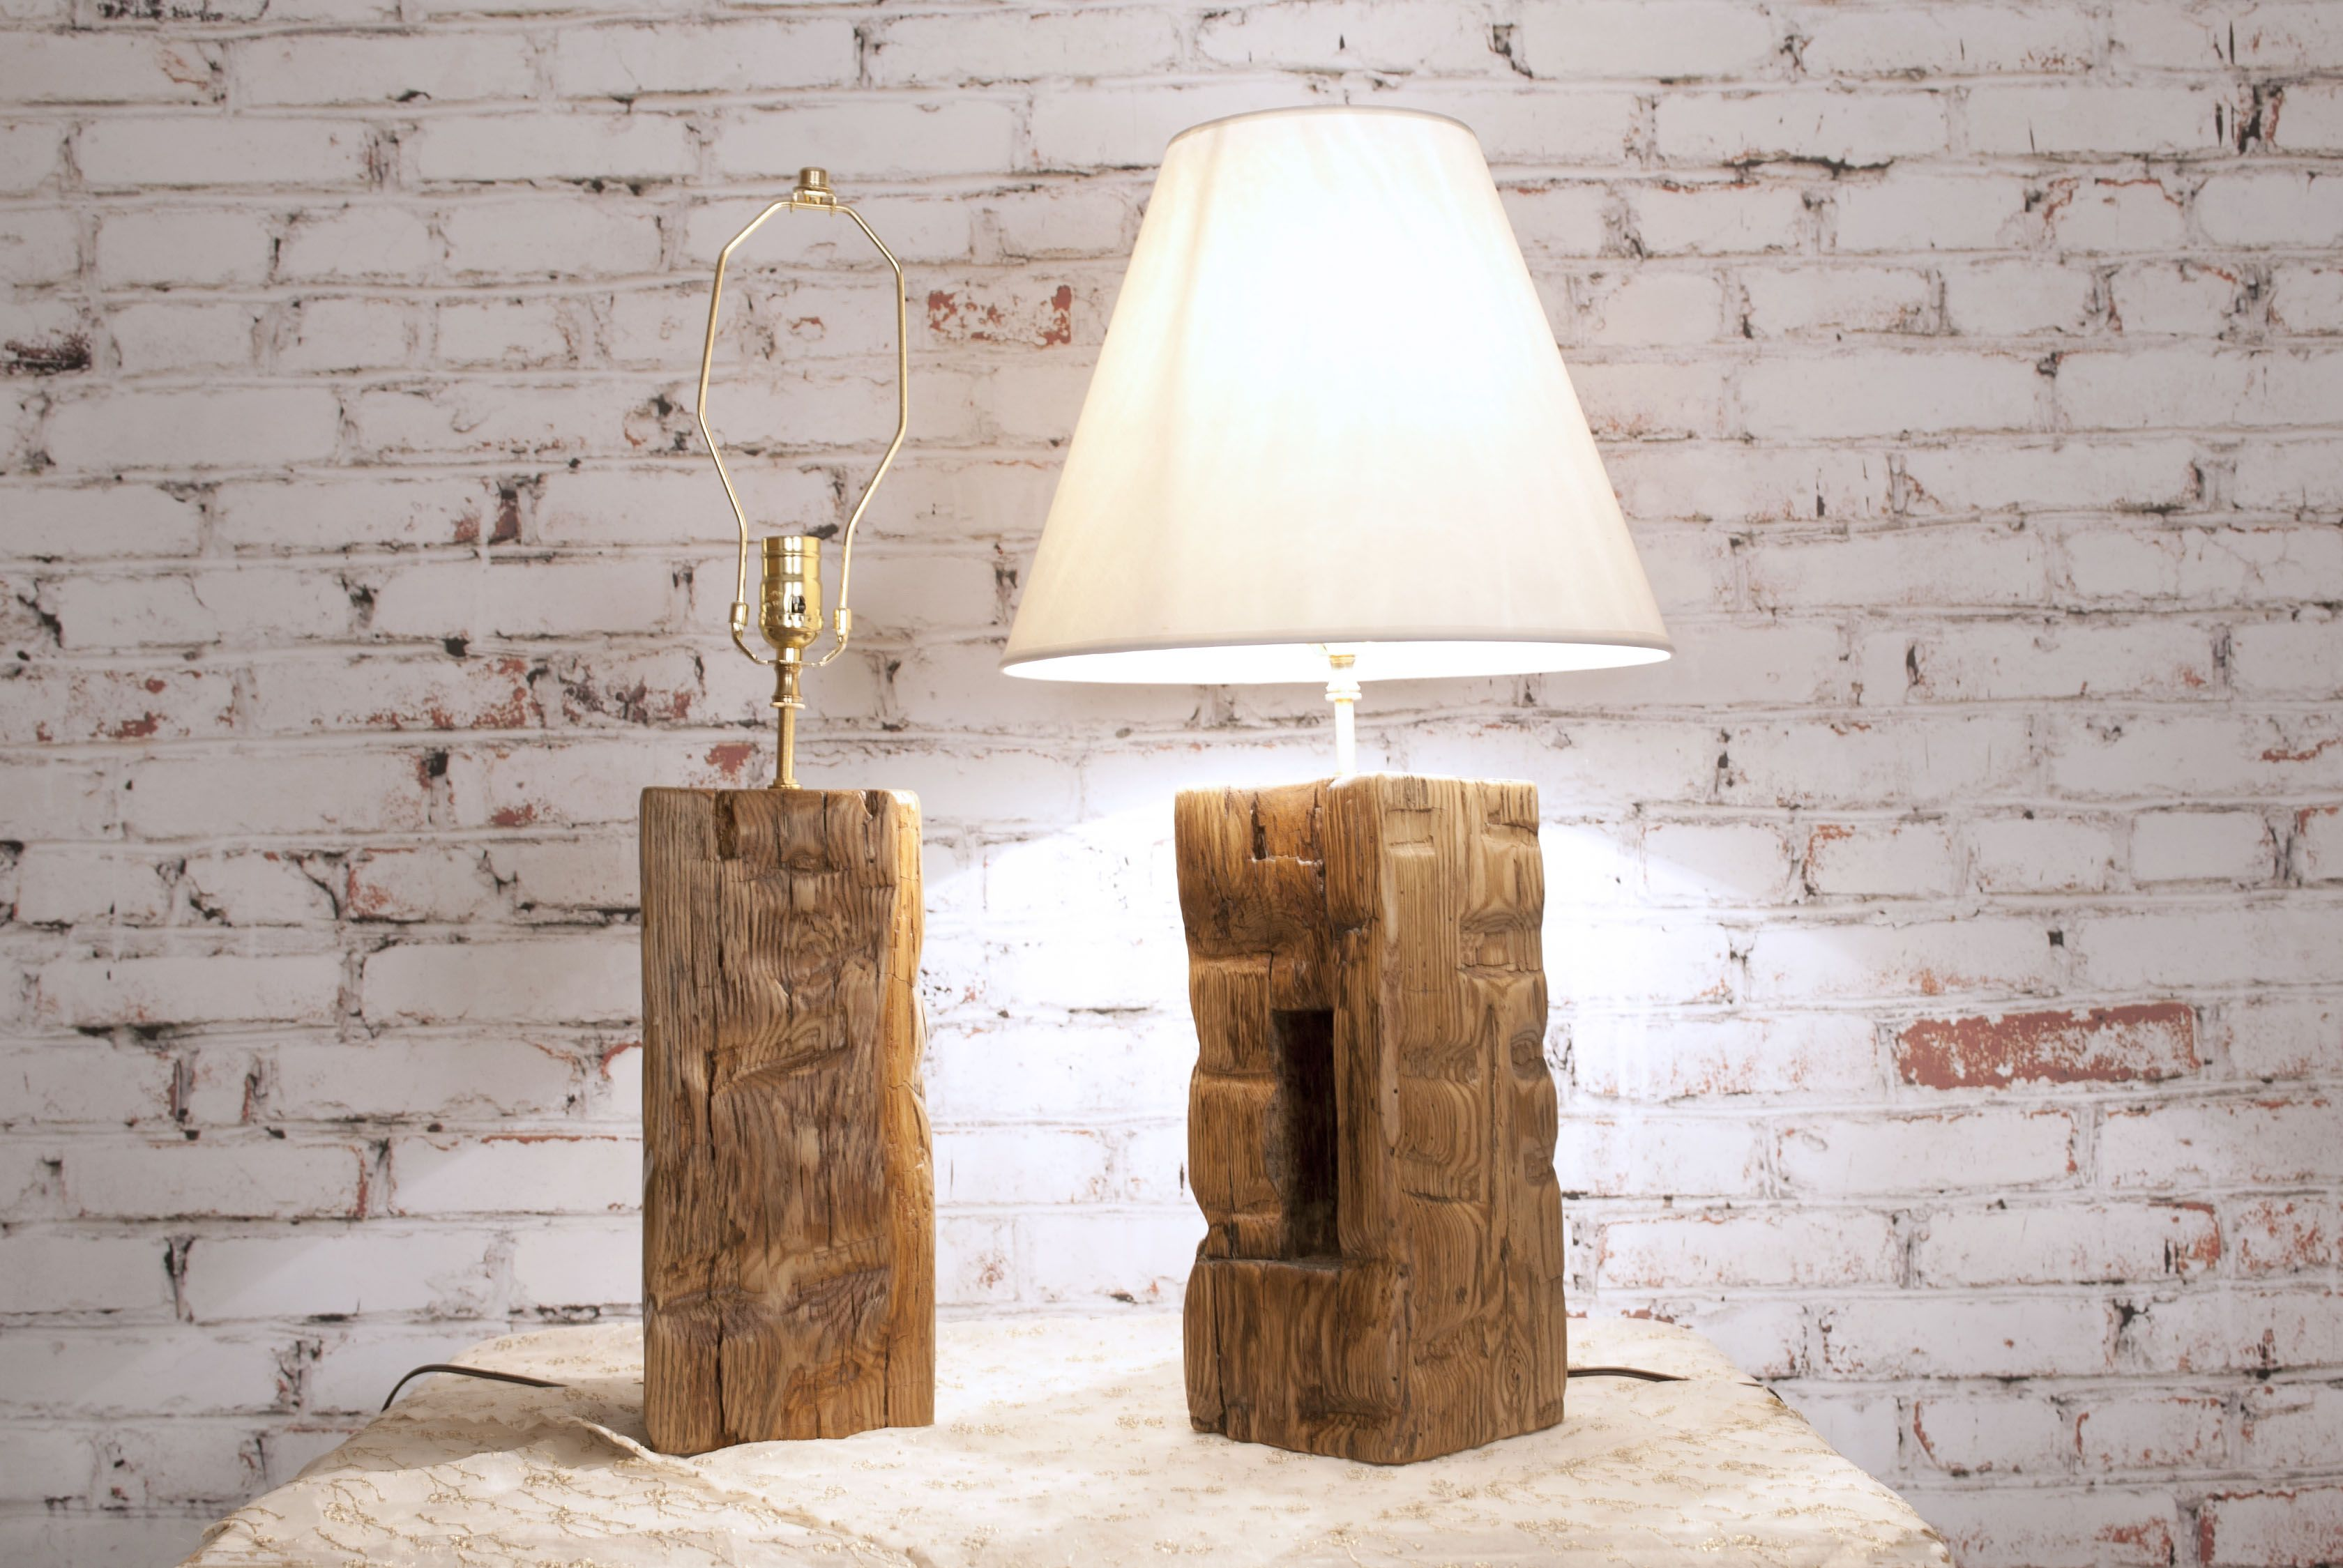 Wood outdoor lamp post - Barn Beam Lamp Pair Rustic Country Accent Hand Hewn Handmade Wood Americana Salvage